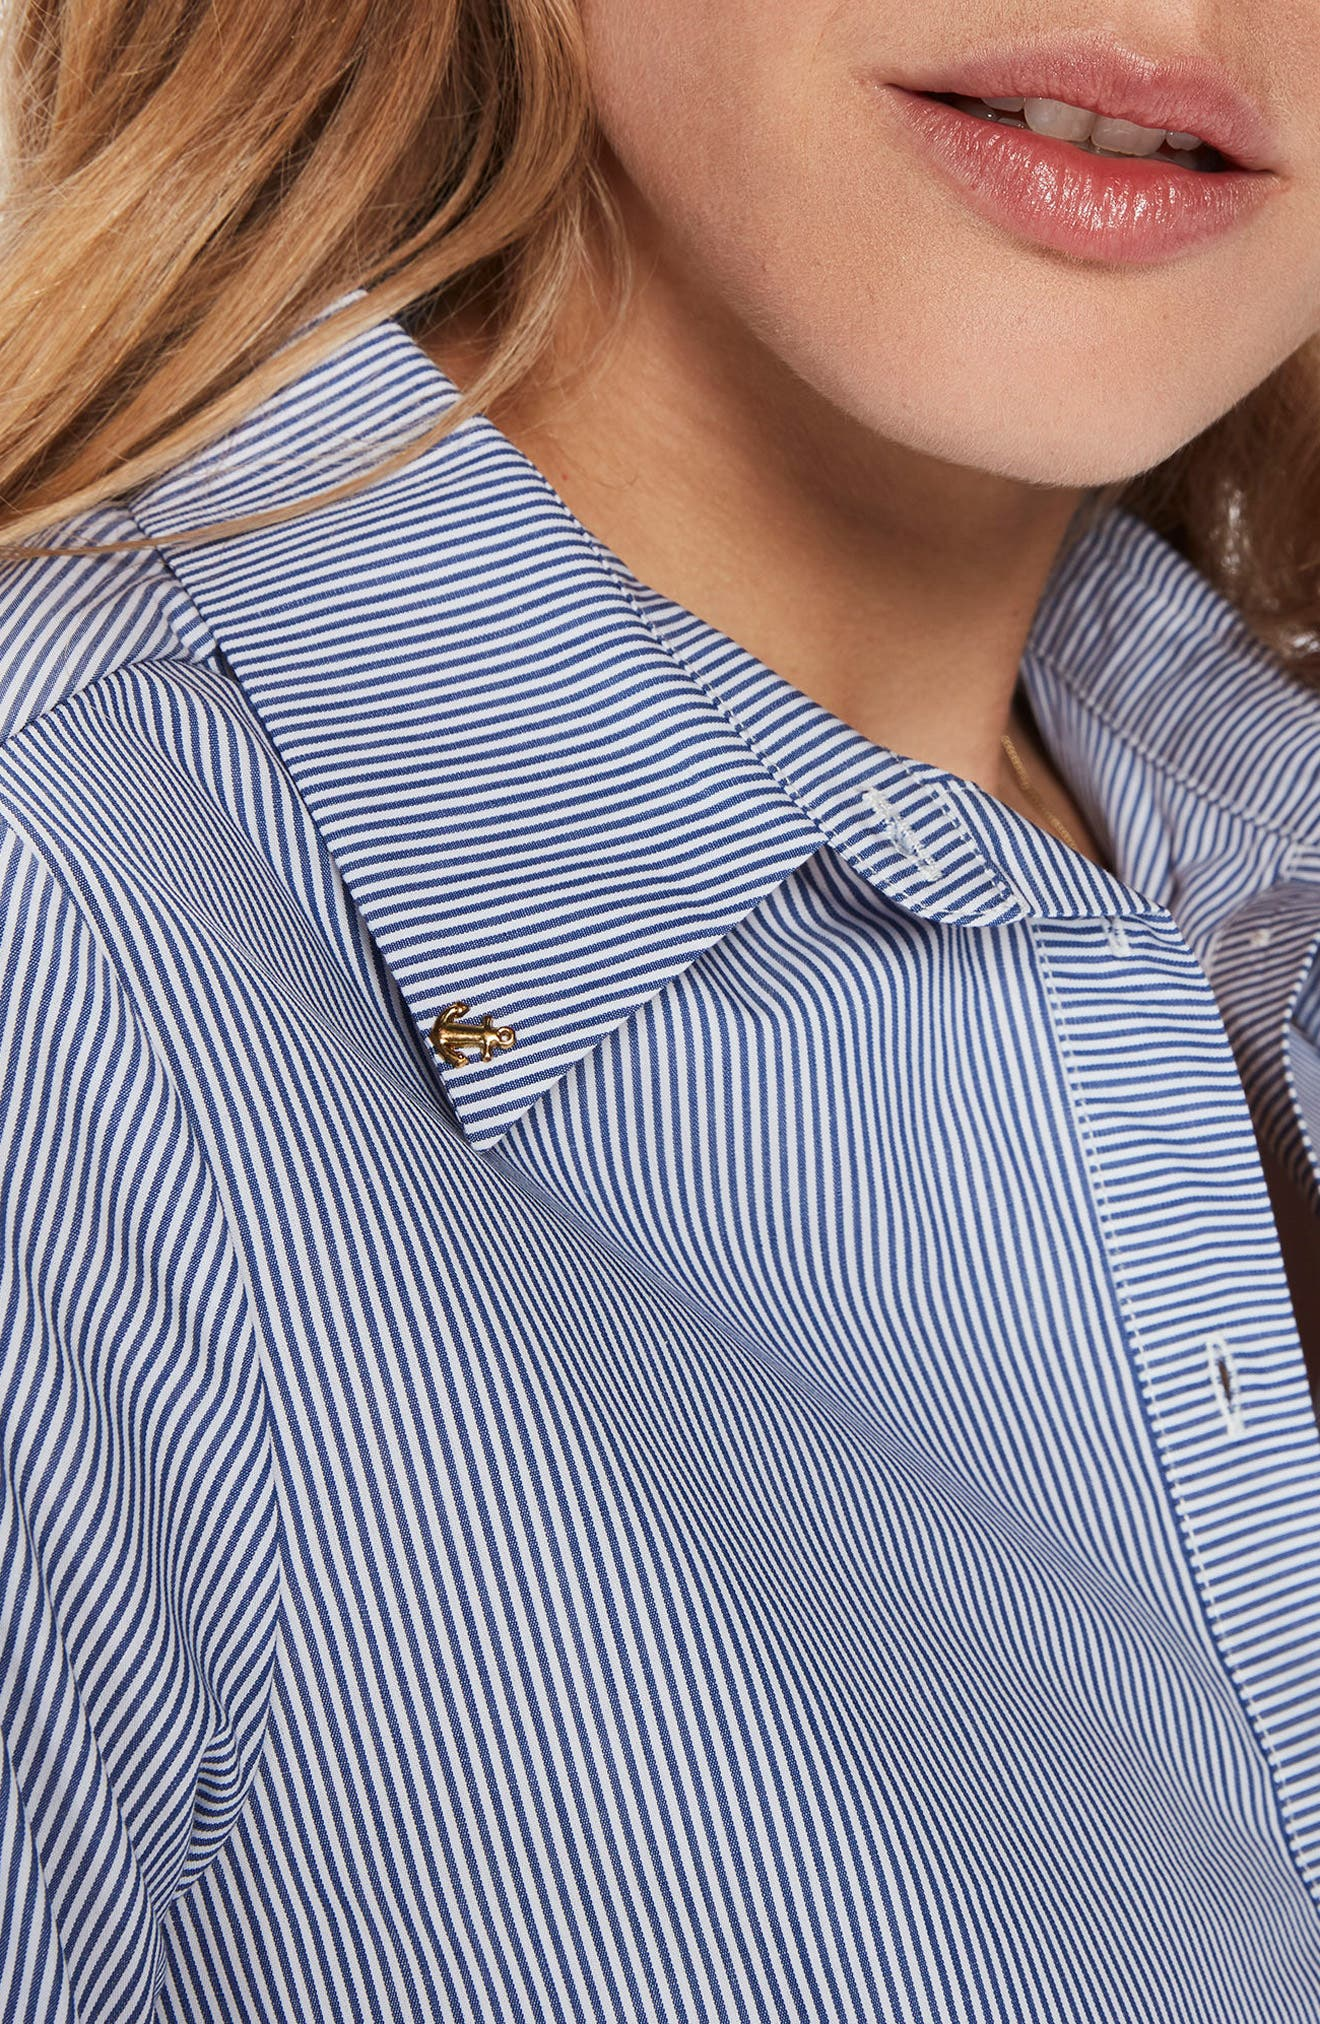 Bell Sleeve Shirt,                             Alternate thumbnail 5, color,                             Blue Thin Stripe